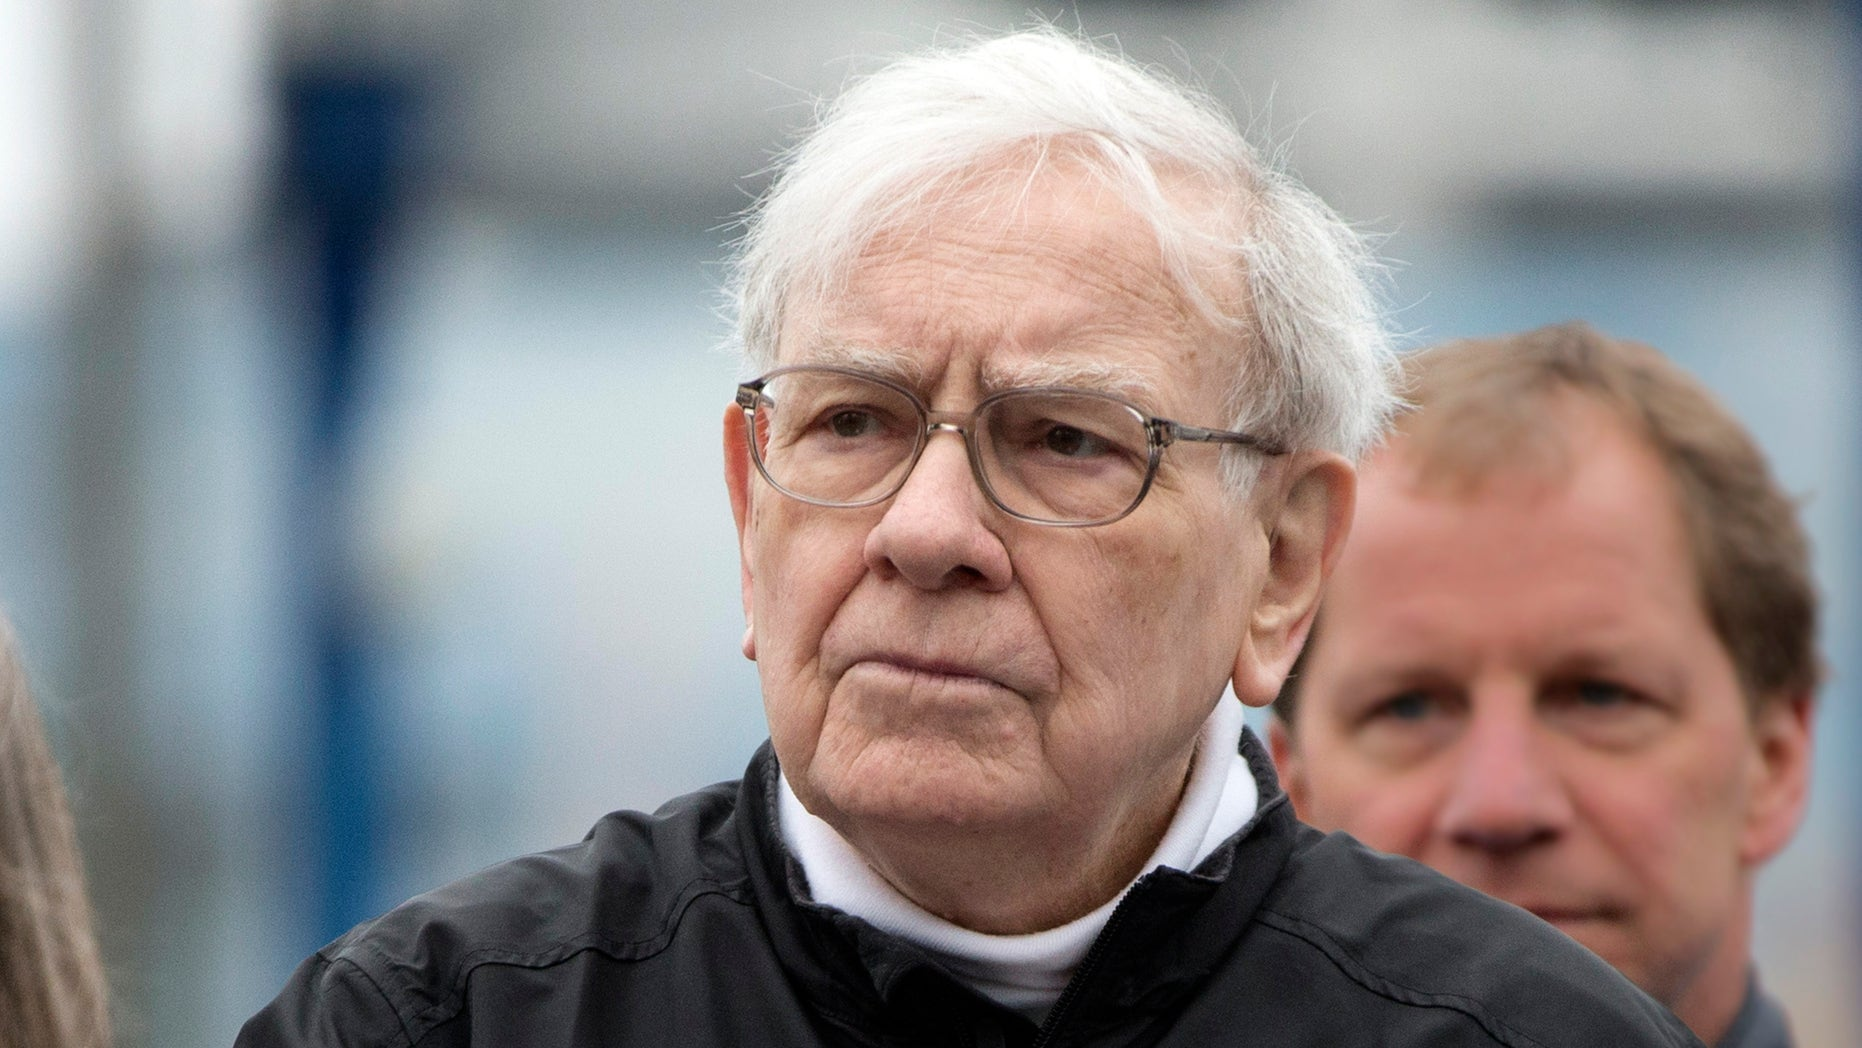 Investor Warren Buffett places a hand on his heart during the playing of the national anthem prior to launching a 5K run and walk organized by the Brooks Running Company, a Berkshire Hathaway subsidiary, in Omaha, Neb., Sunday, May 5, 2013. The Berkshire Hathaway shareholders meeting is being held this weekend in Omaha. (AP Photo/Nati Harnik)